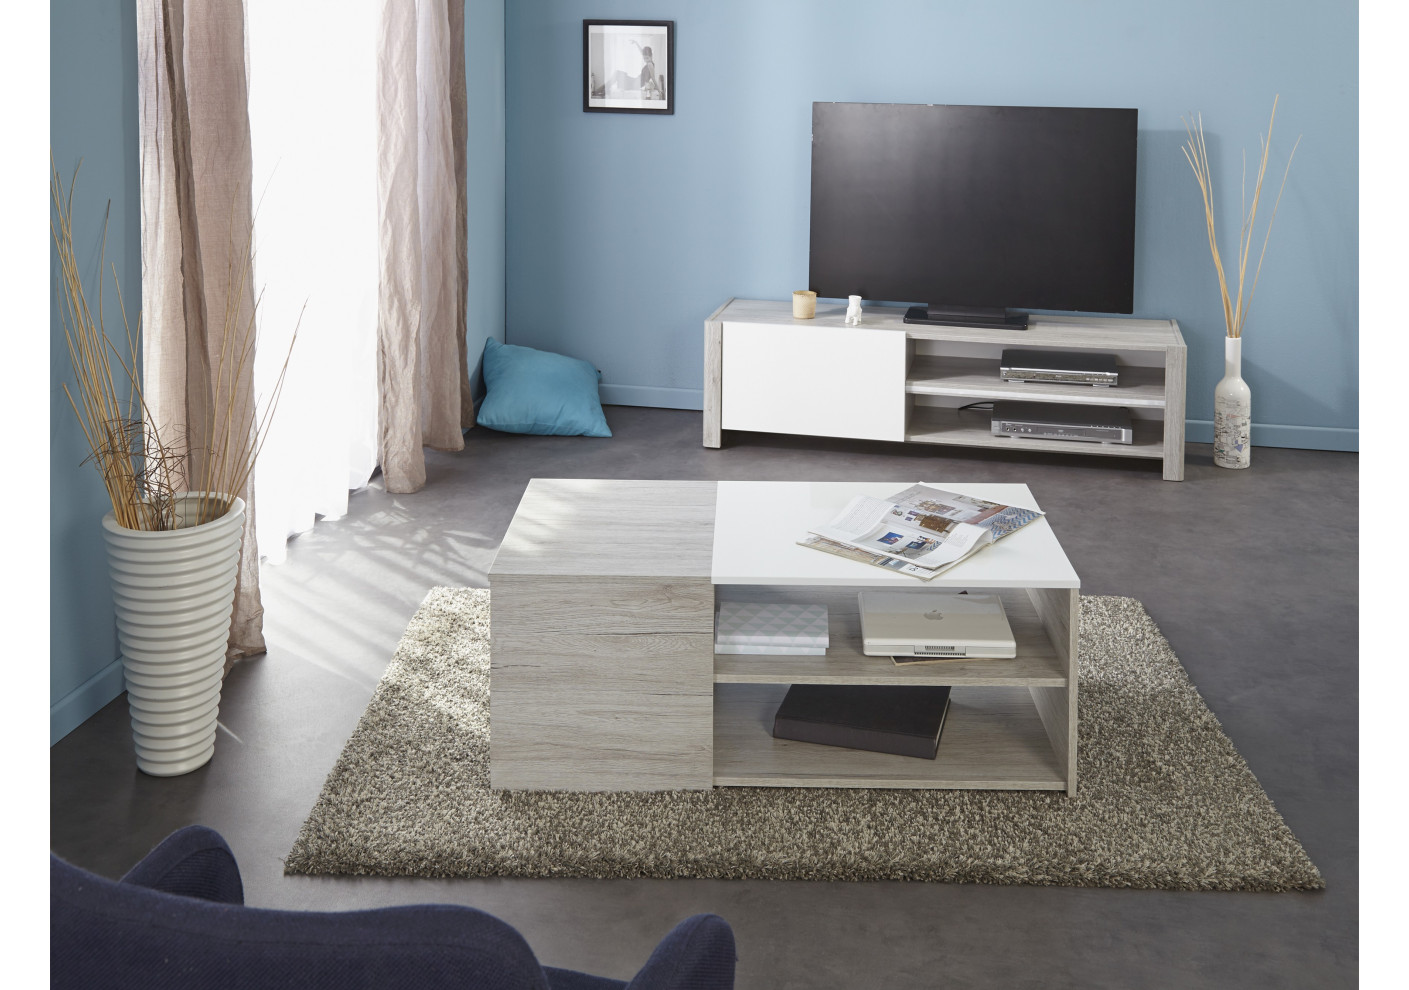 Meuble tv lumiled blanc brillant et gris meubles tv salon for Meuble gris